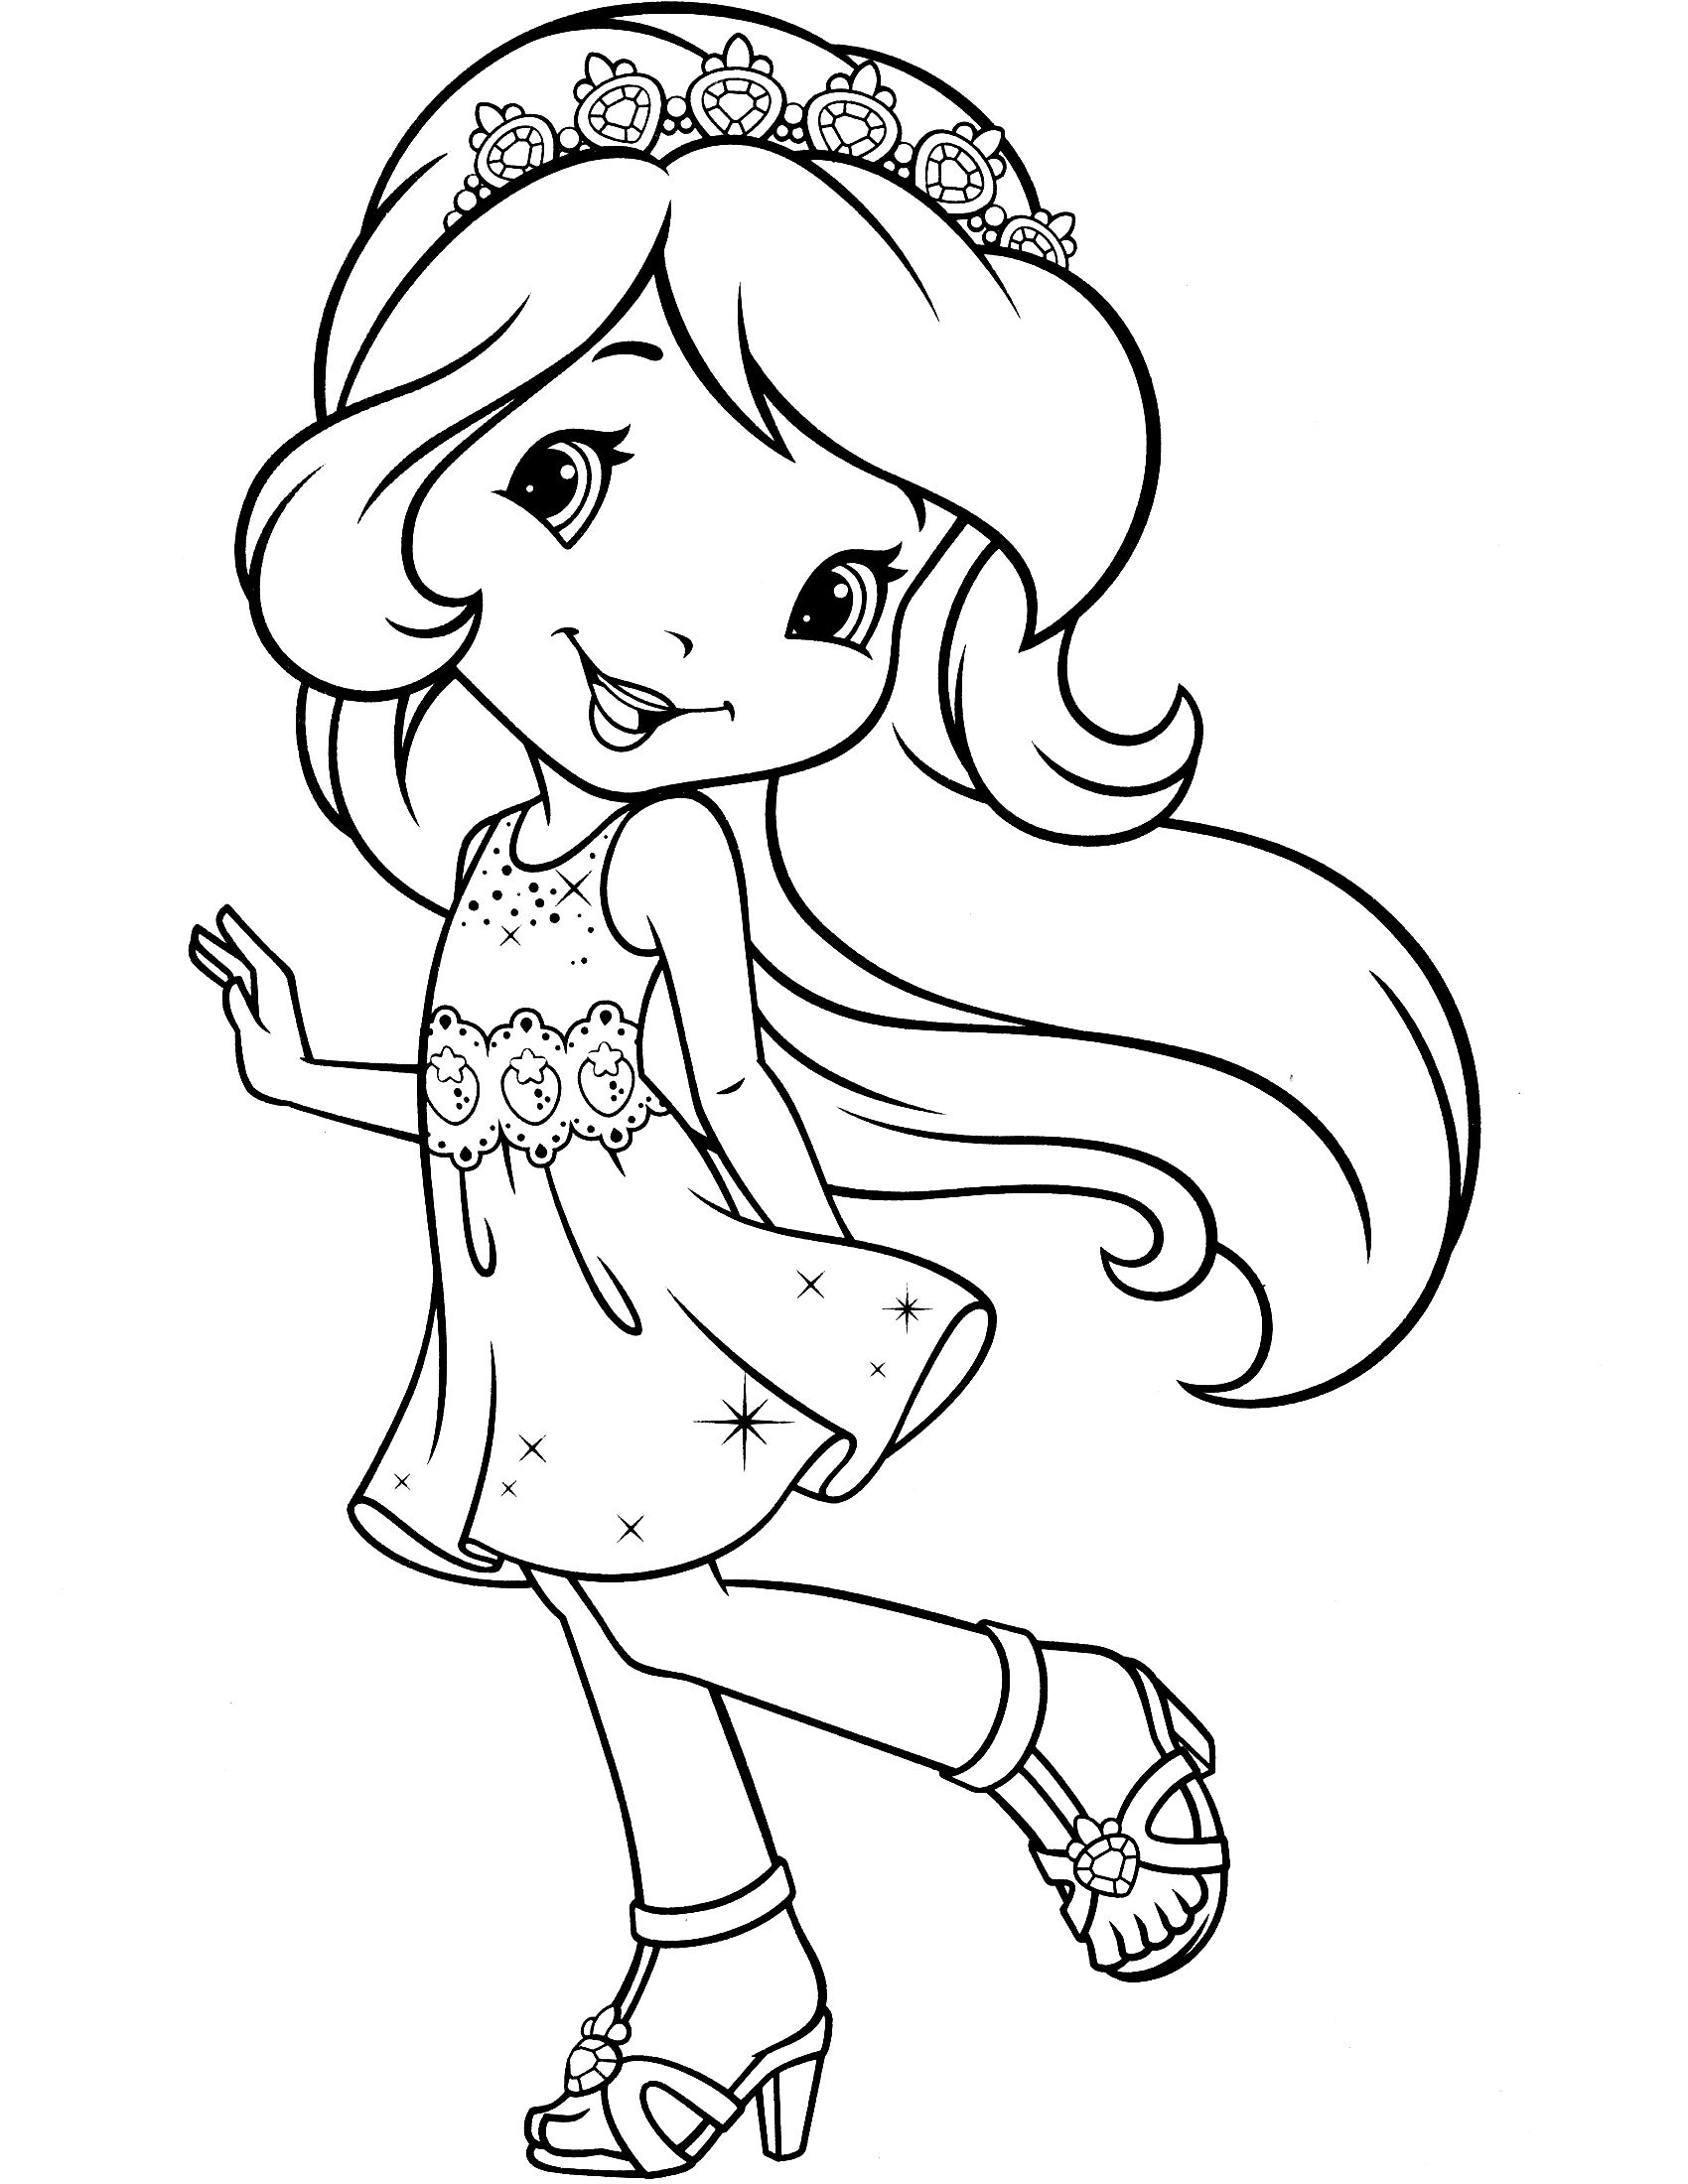 strawberry shortcake princess coloring pages princess strawberry shortcake coloring pages shortcake strawberry pages princess coloring